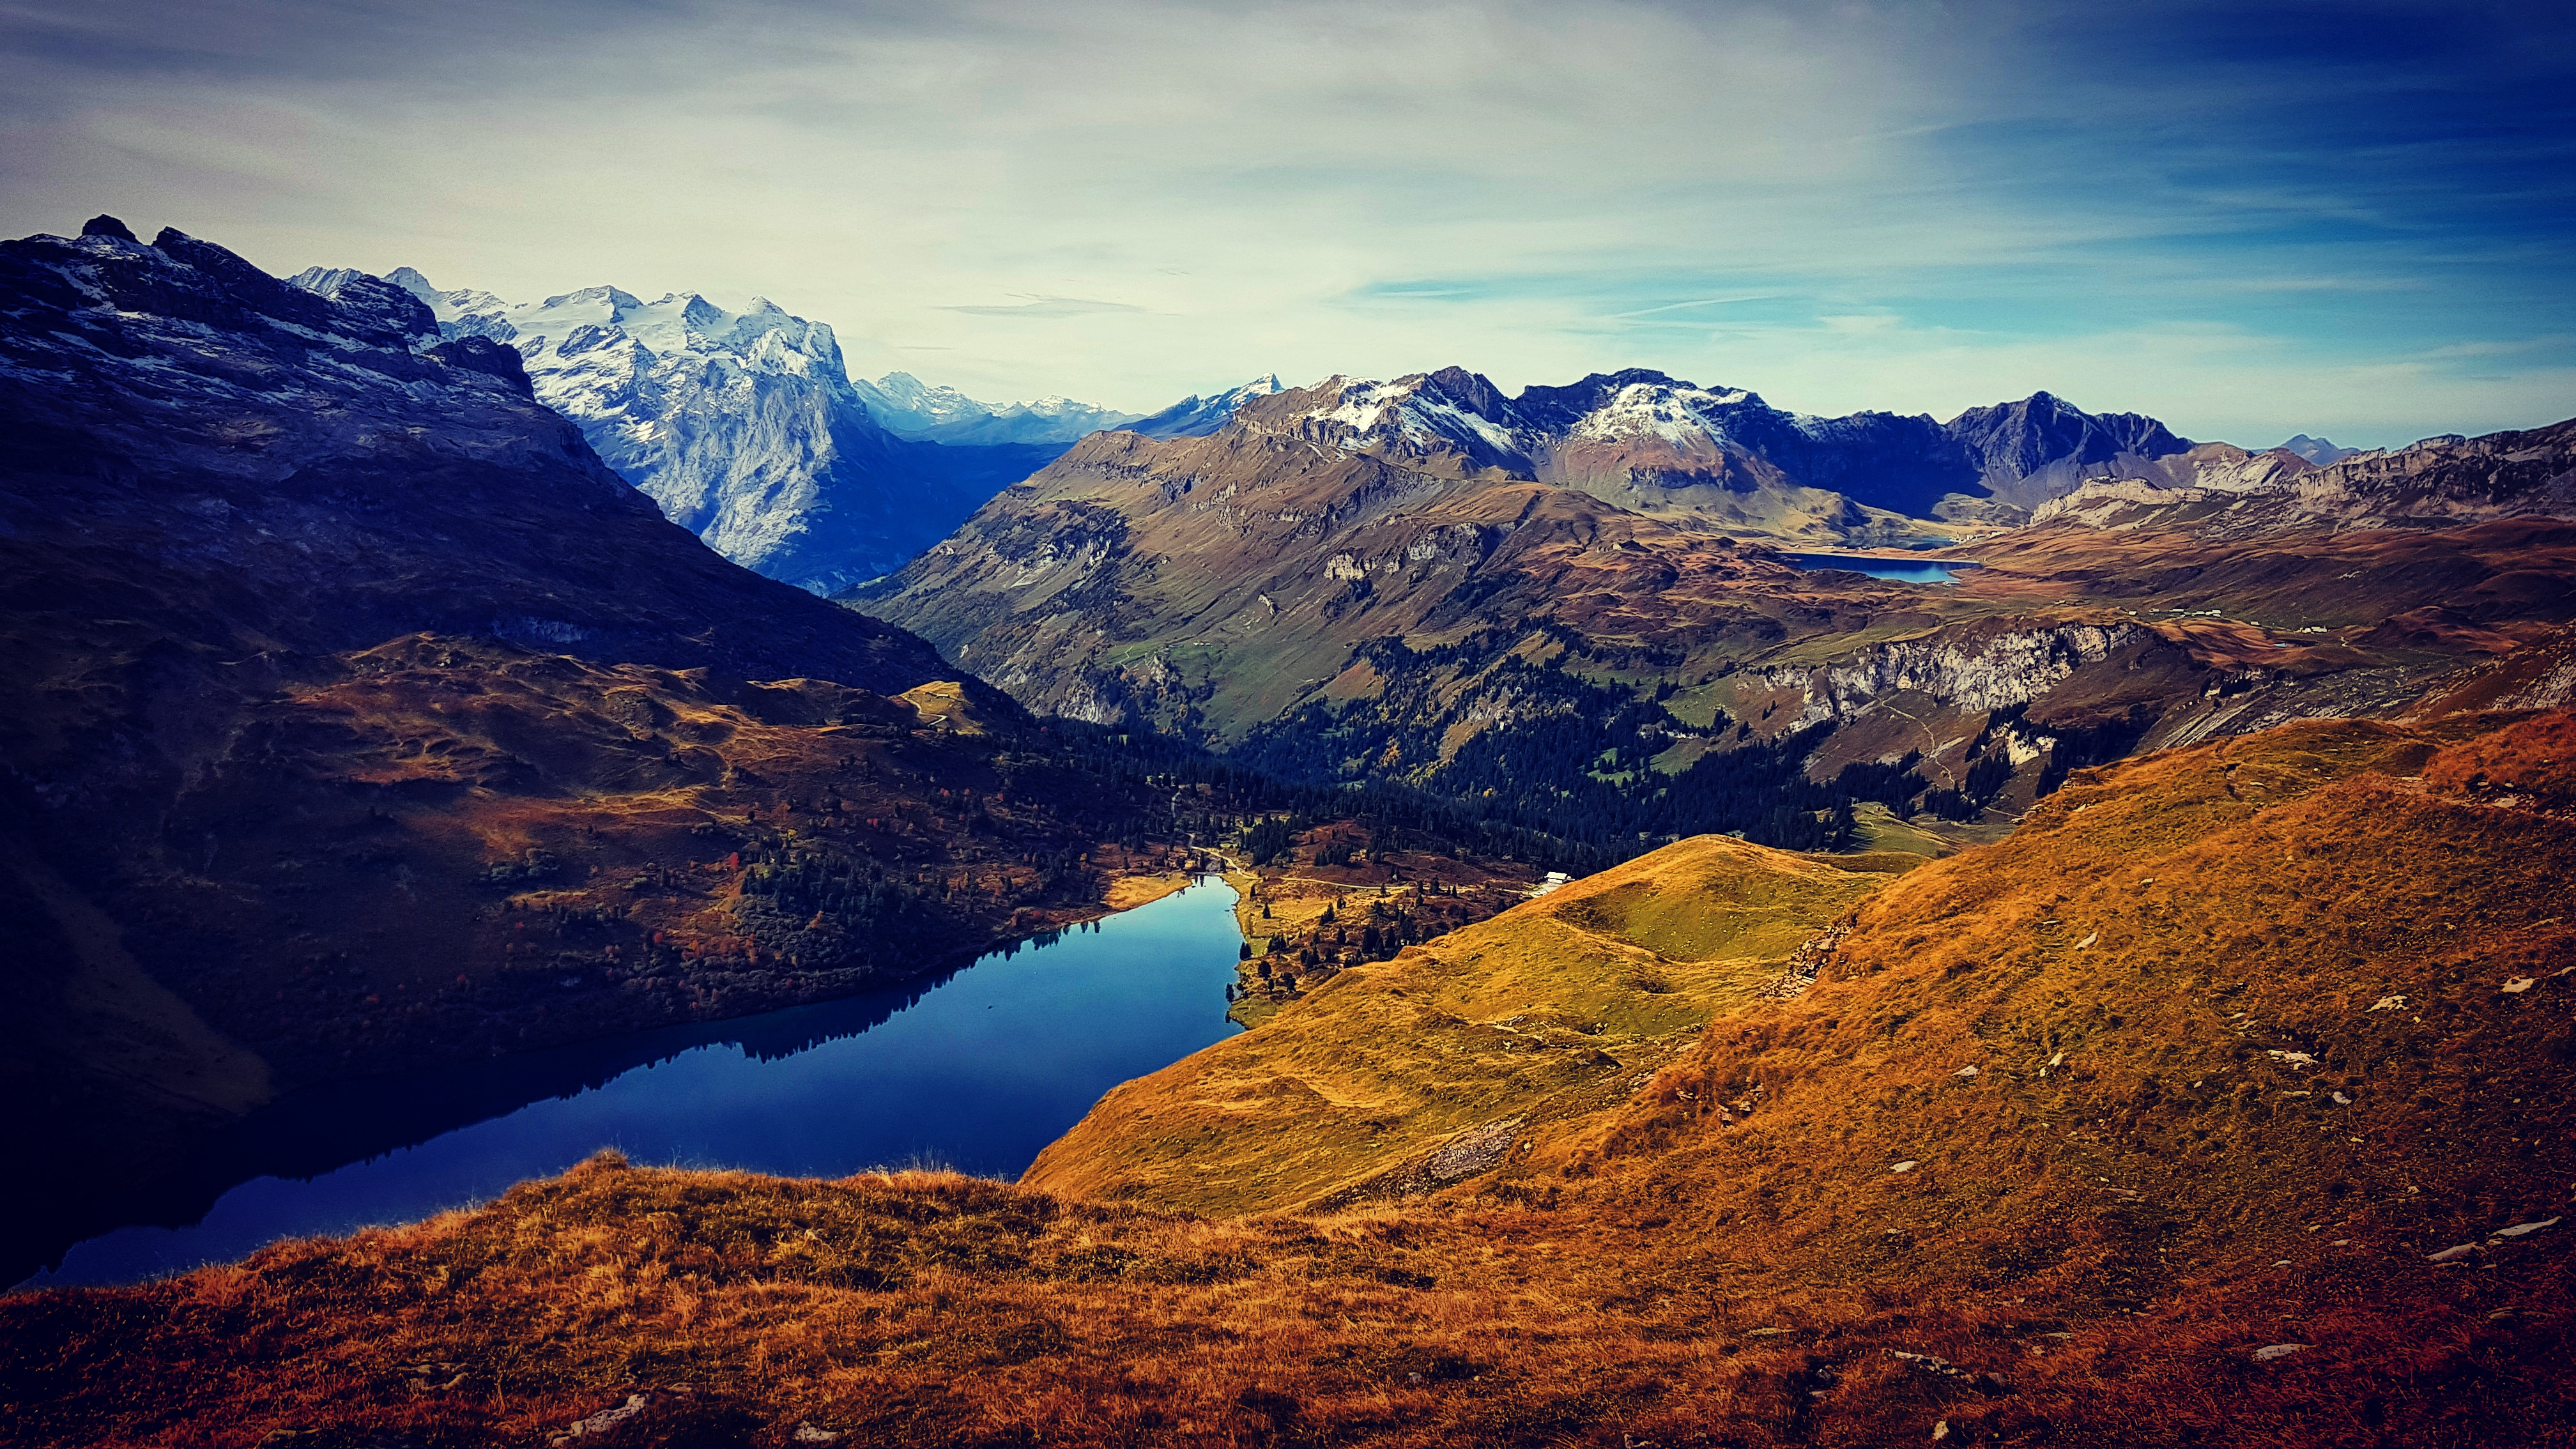 Ascend to your Summit - Central Switzerland - professional life coaching by STRATZR